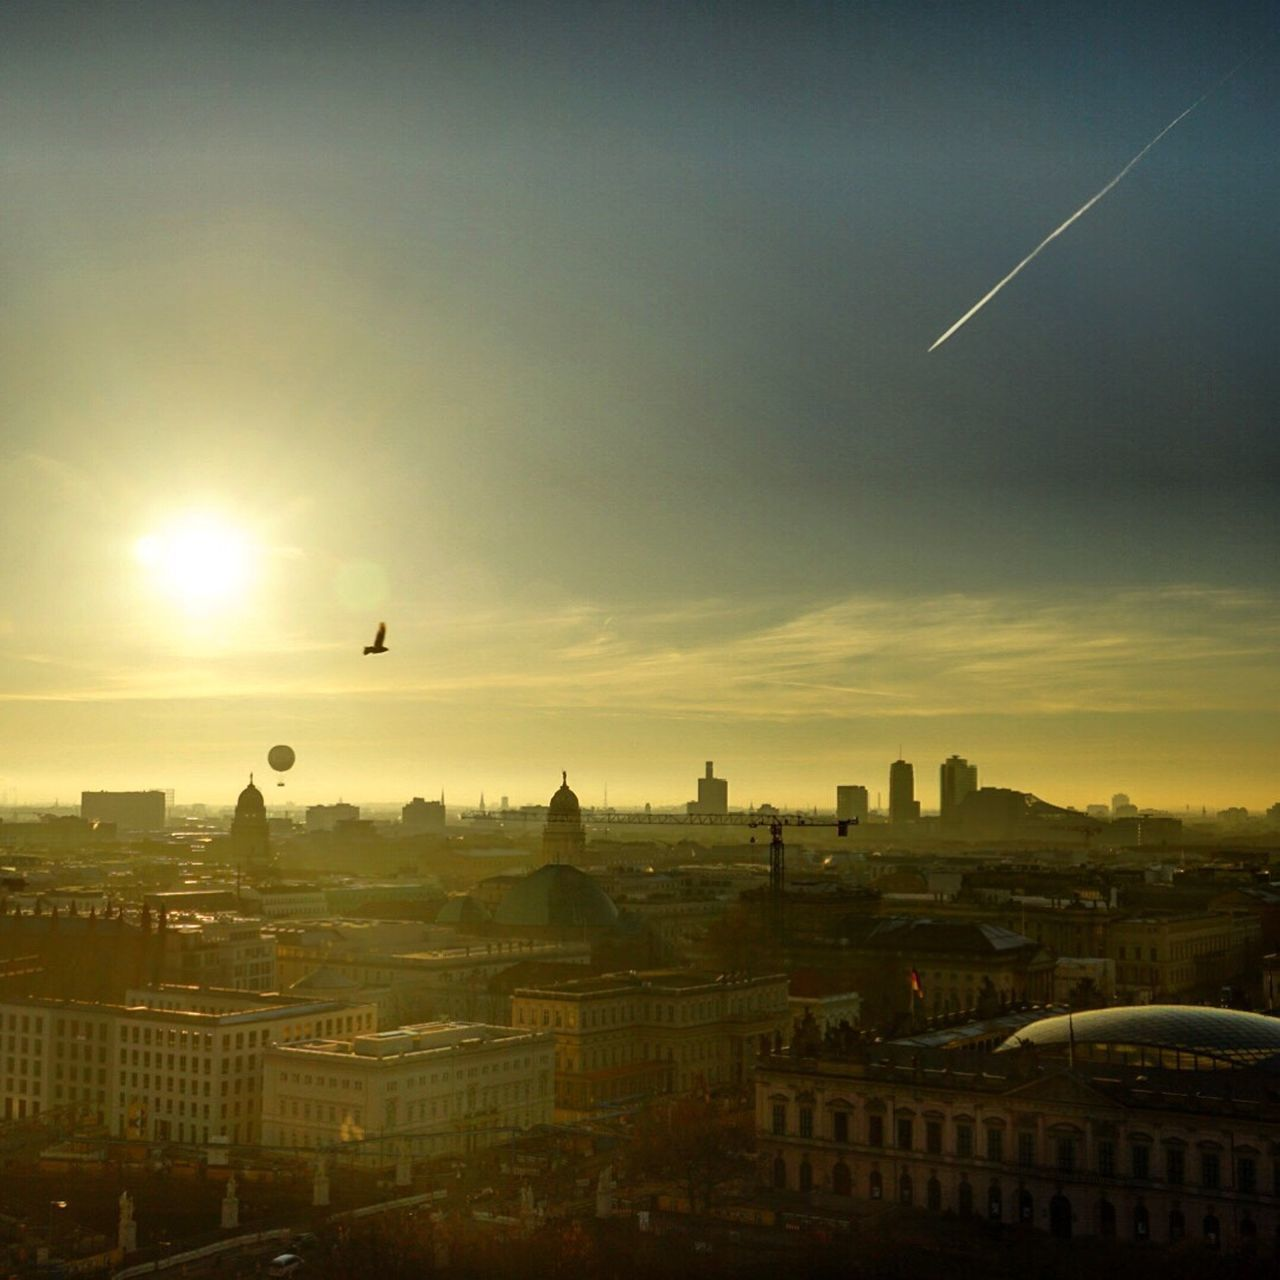 architecture, built structure, building exterior, flying, cityscape, sunset, city, sky, outdoors, no people, dome, vapor trail, nature, bird, day